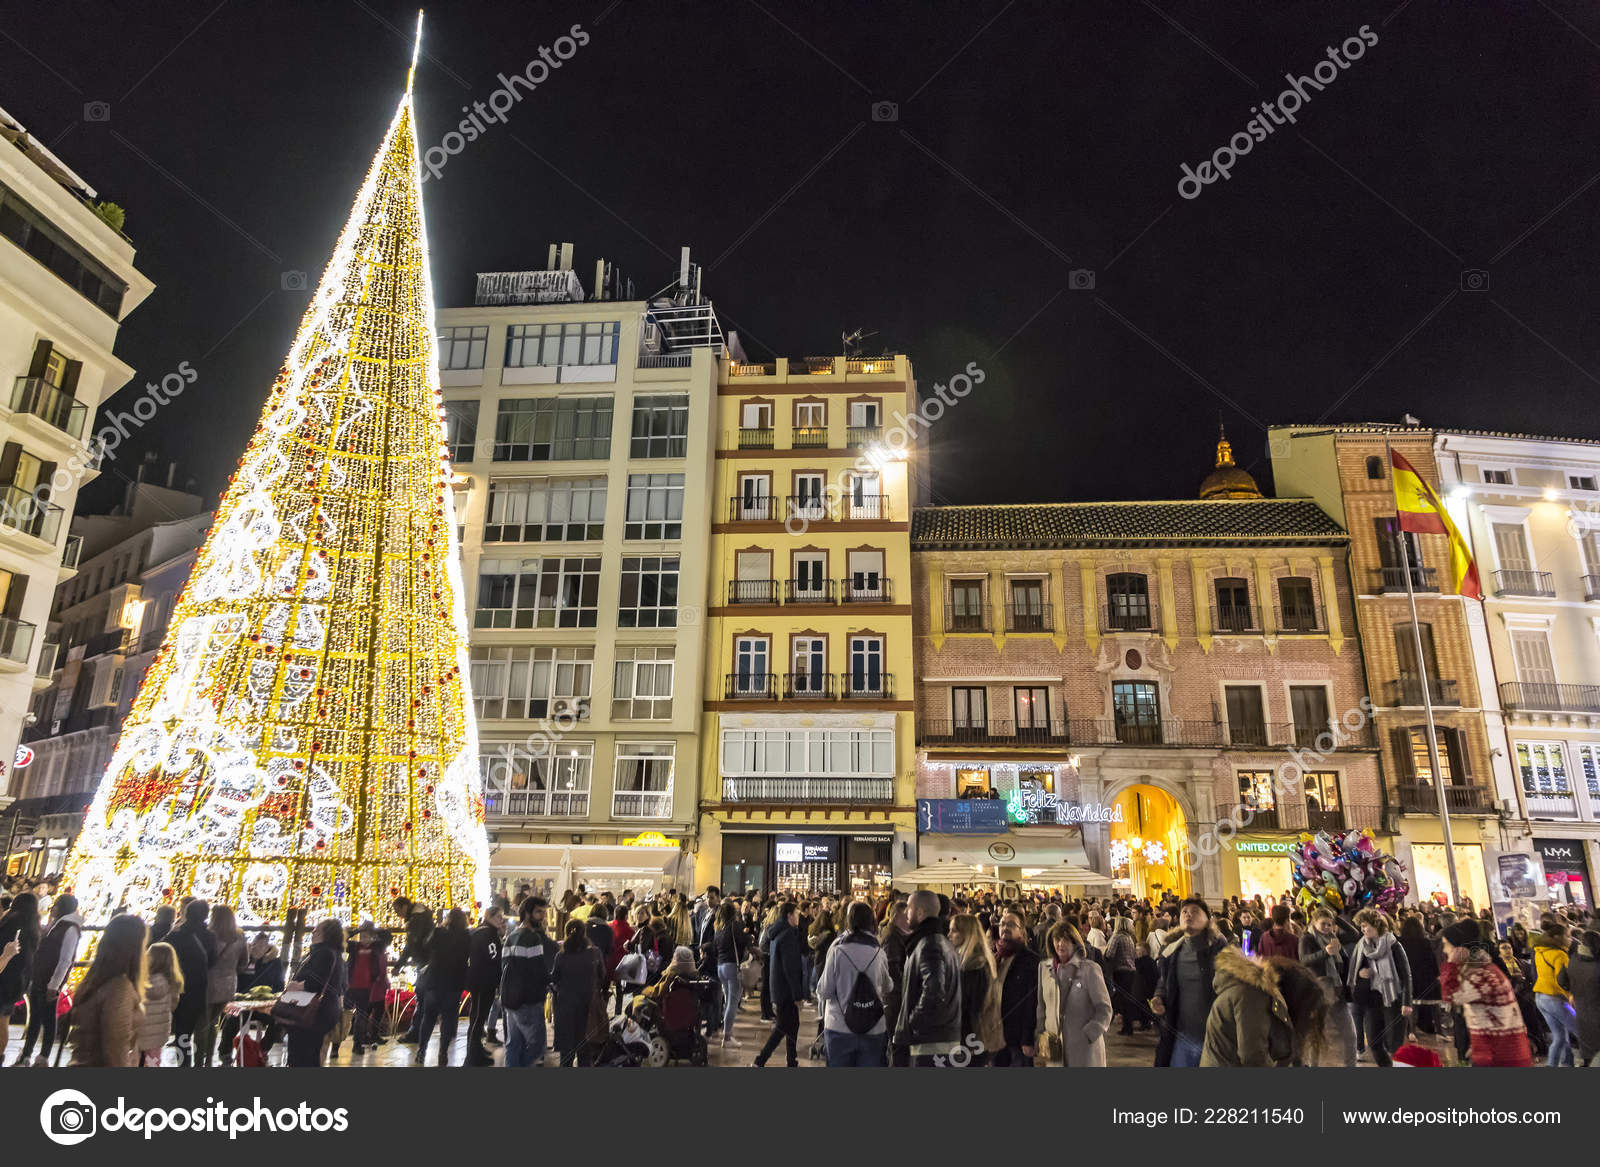 MALAGA, SPAIN - DECEMBER 9, 2017: Crowds of people walking near the decorated Christmas Tree on Plaza de la Constitucion in center of Malaga city, ...